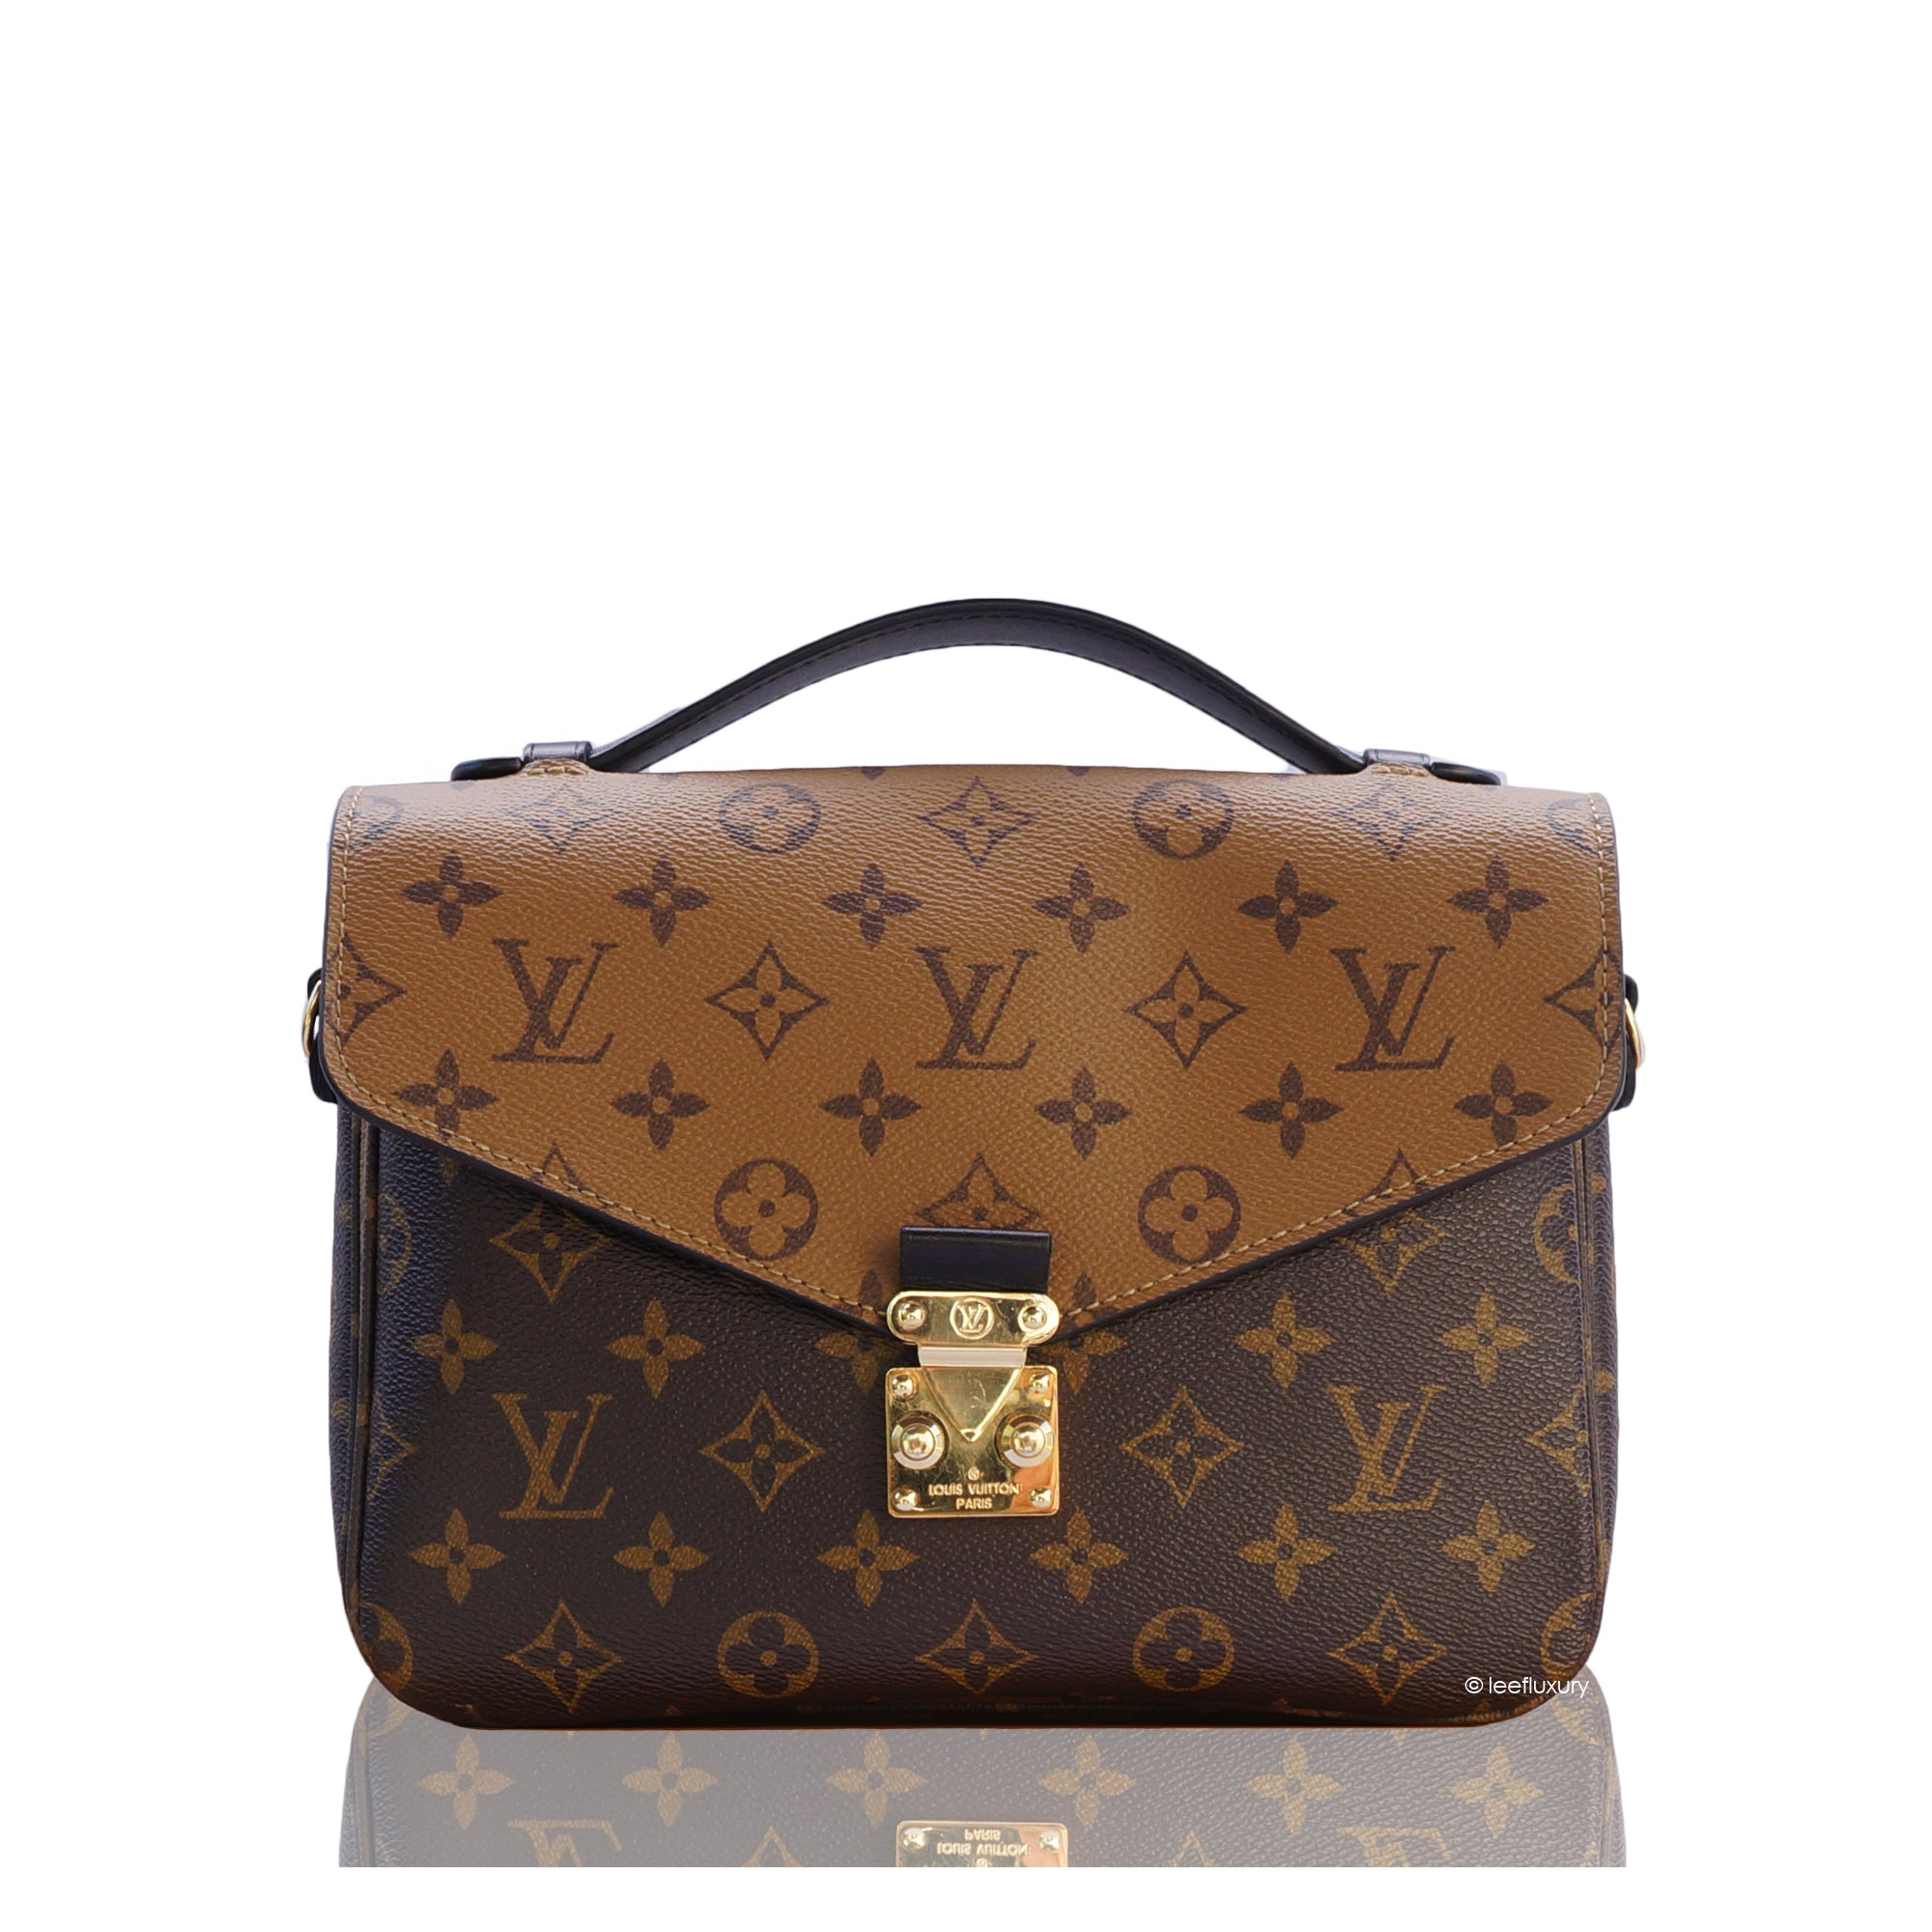 e6c3944b4aab LOUIS VUITTON REVERSE MONOGRAM METIS POCHETTE Shop the best value on  authentic designer resale consignment on ...